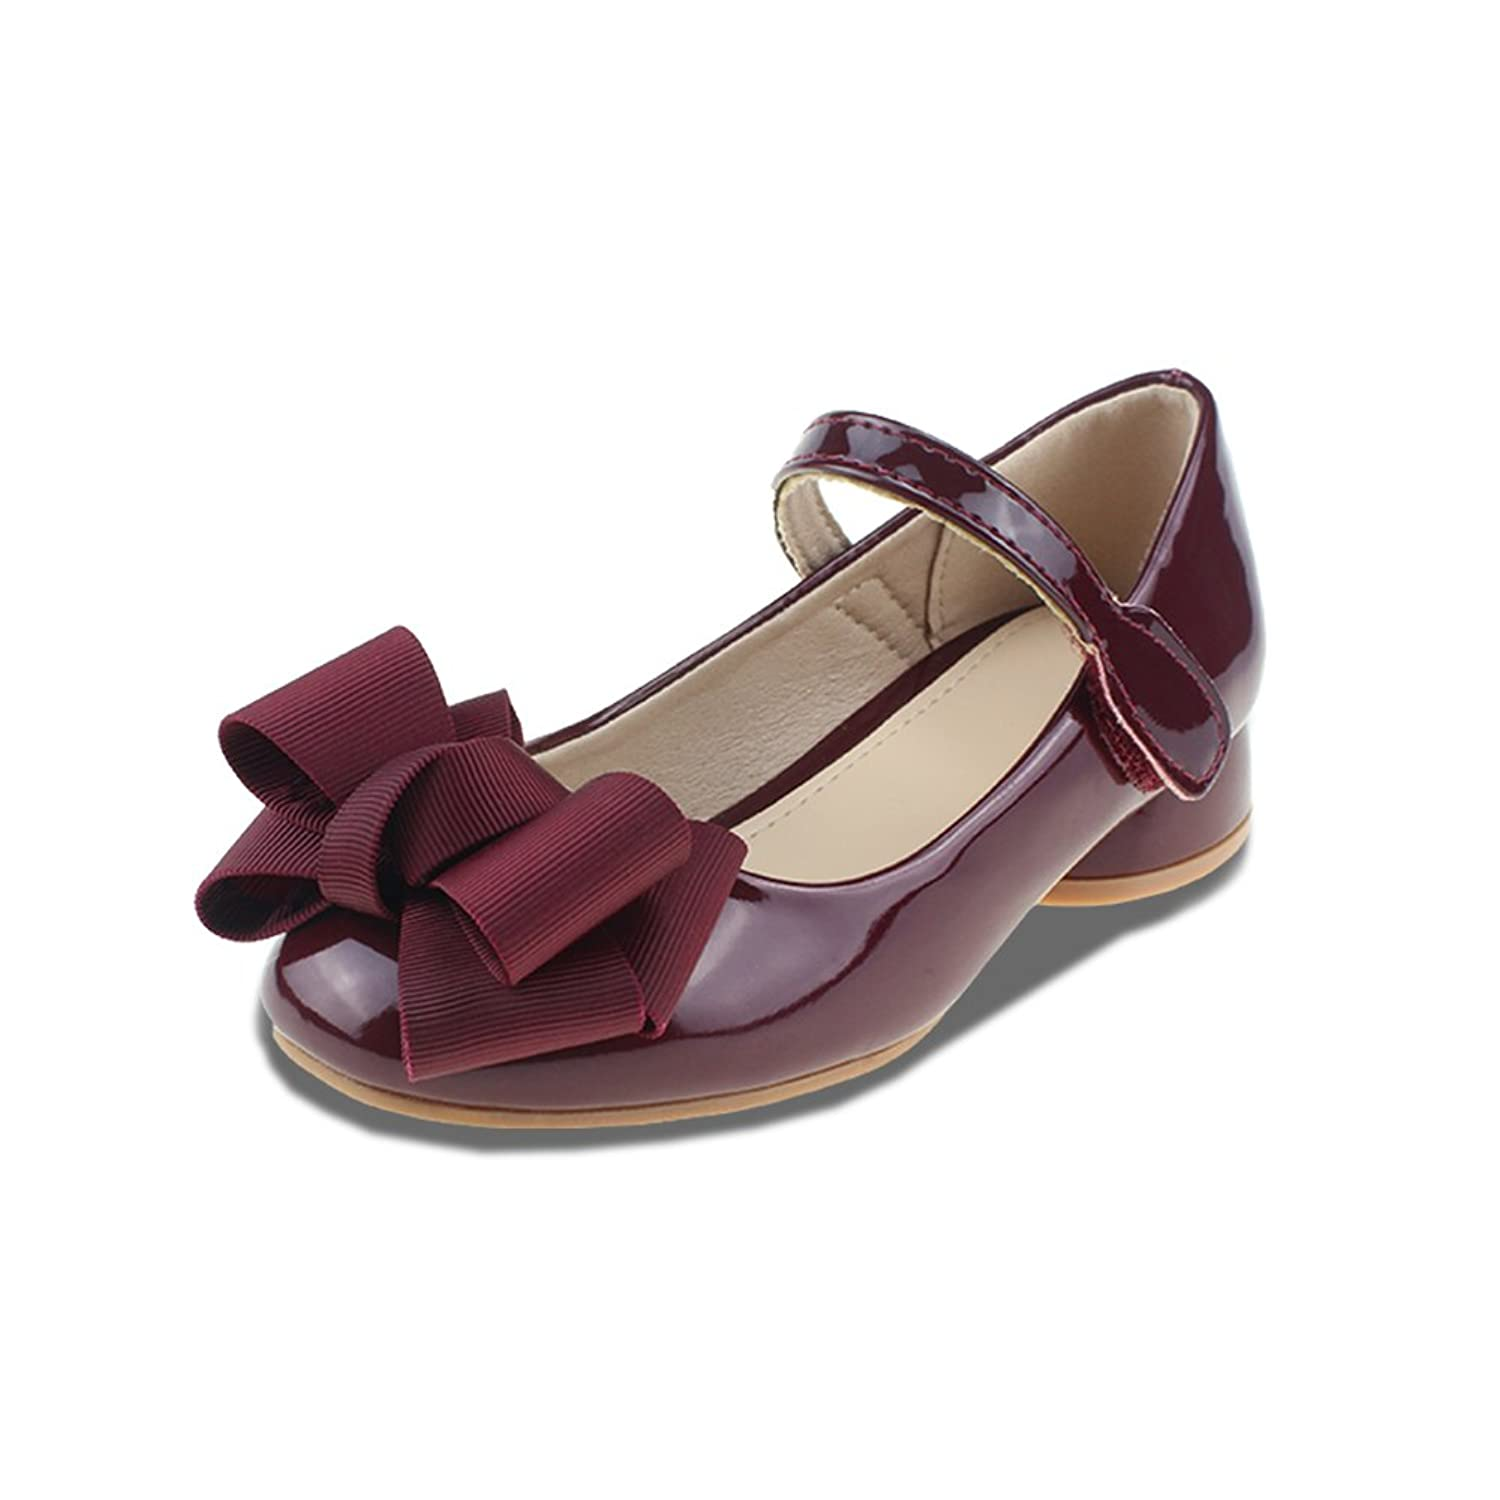 9e678dc0e9ba Chiximaxu Maxu Girl s Sandals Mary Jane Shoes with Bowknot(Toddler Little  Kid Big